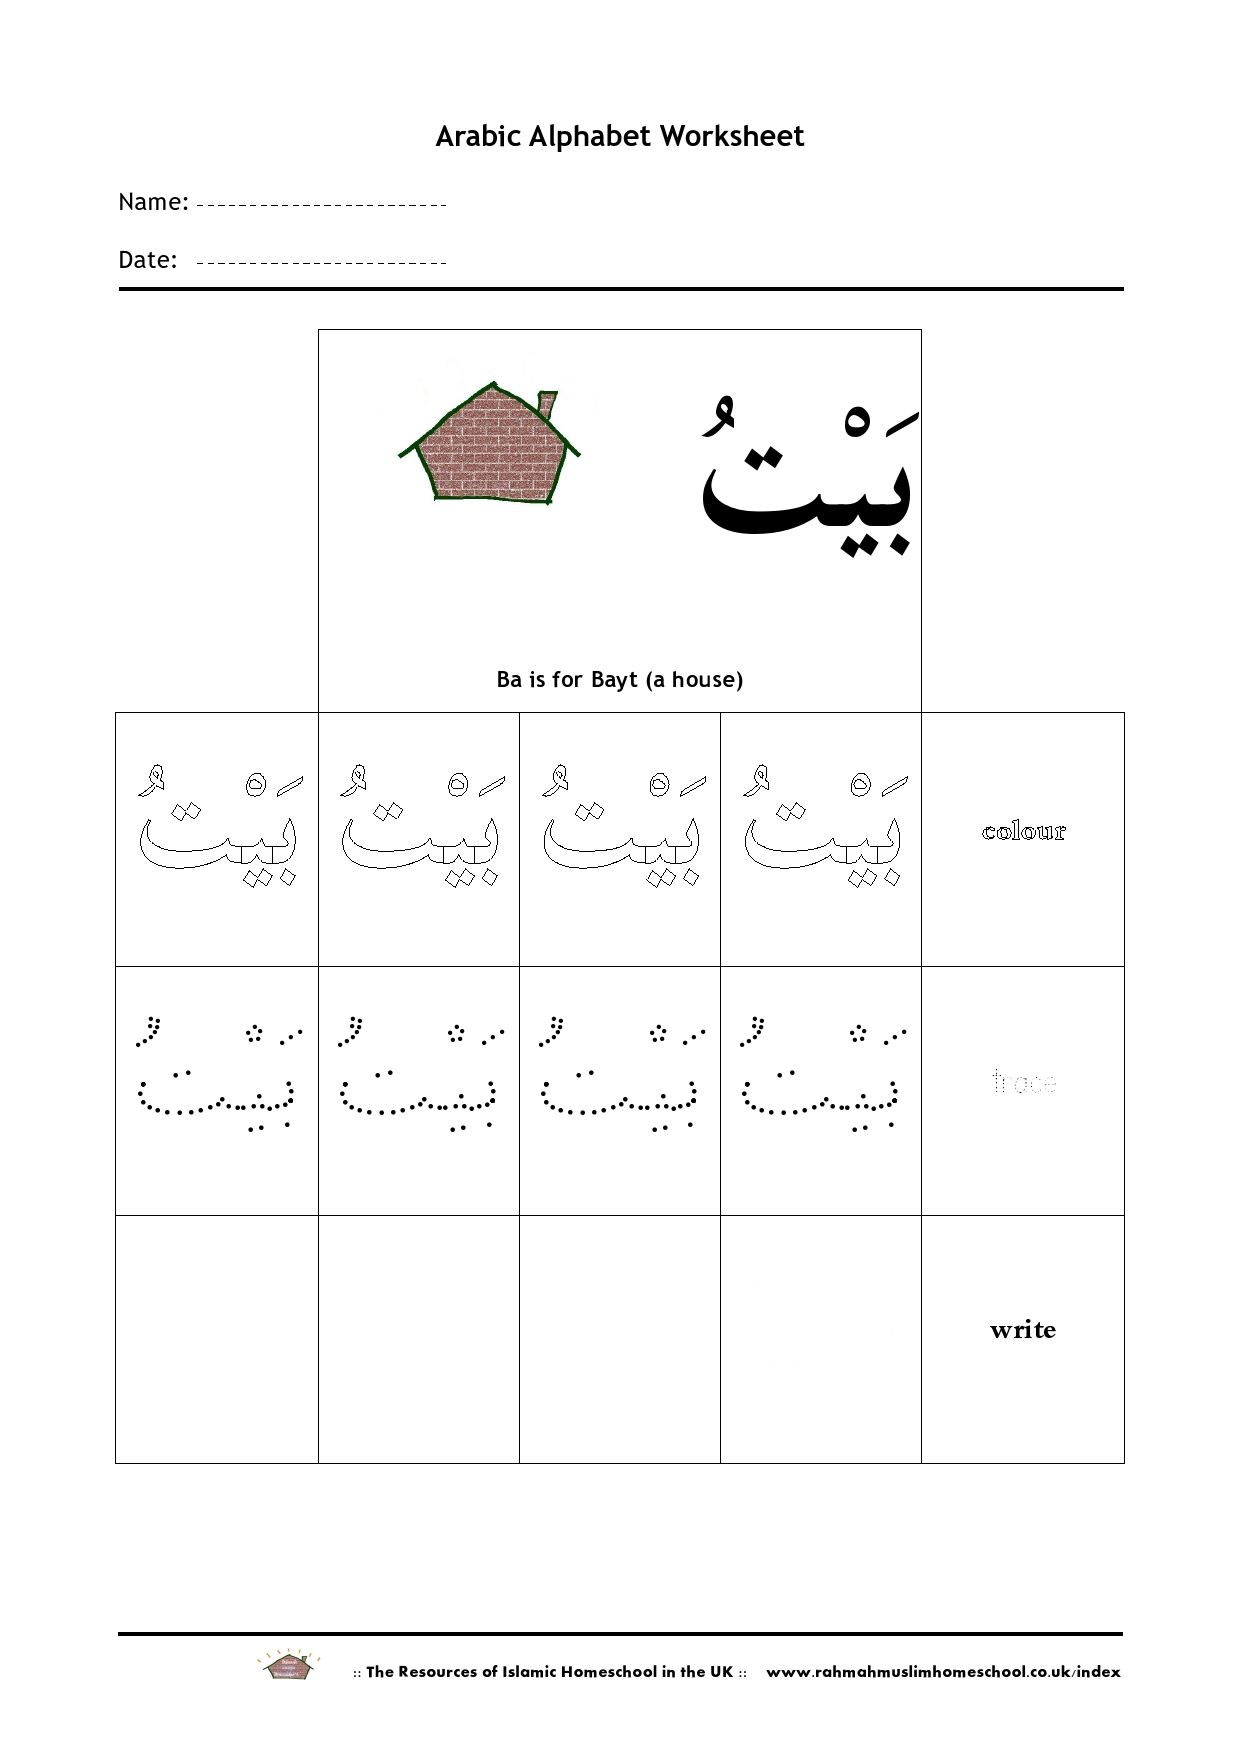 Free Arabic Alphabet Worksheet Ba is for Bayt a house – Arabic Alphabet Worksheet